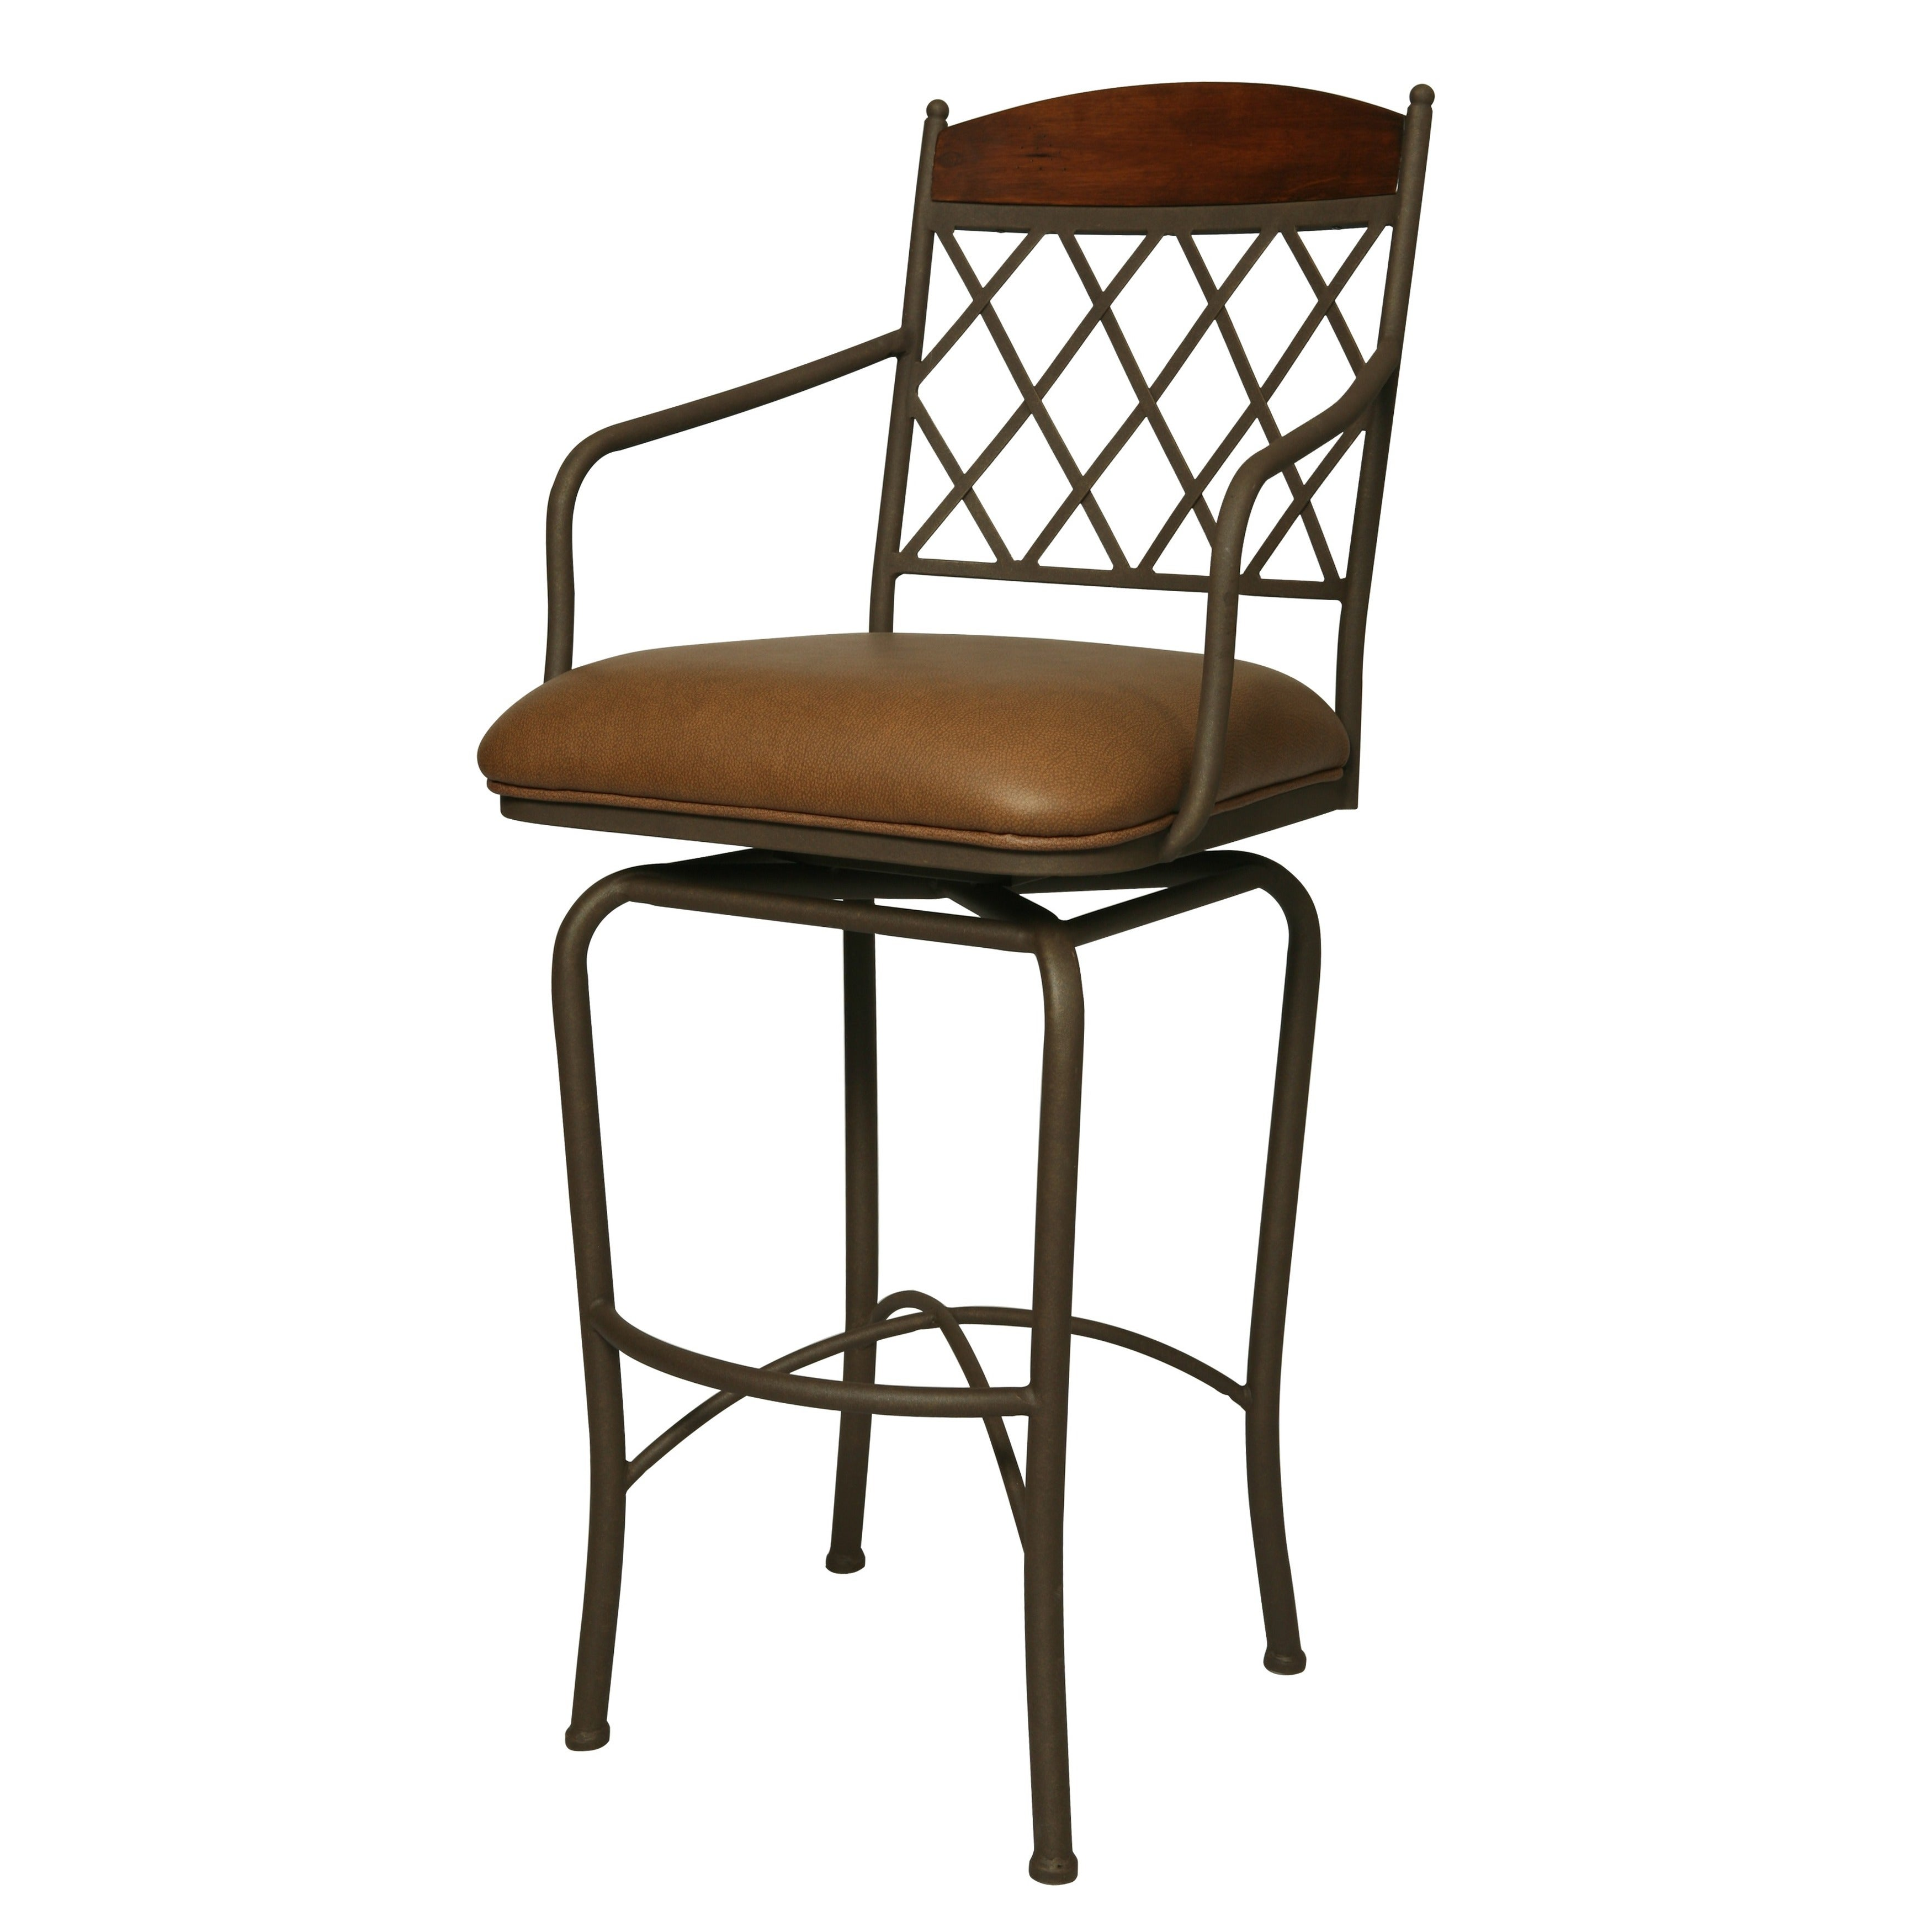 Sensational Napa Ridge Powder Coated Tan Bronze Steel Veneer Faux Leather Swivel Stool Gamerscity Chair Design For Home Gamerscityorg